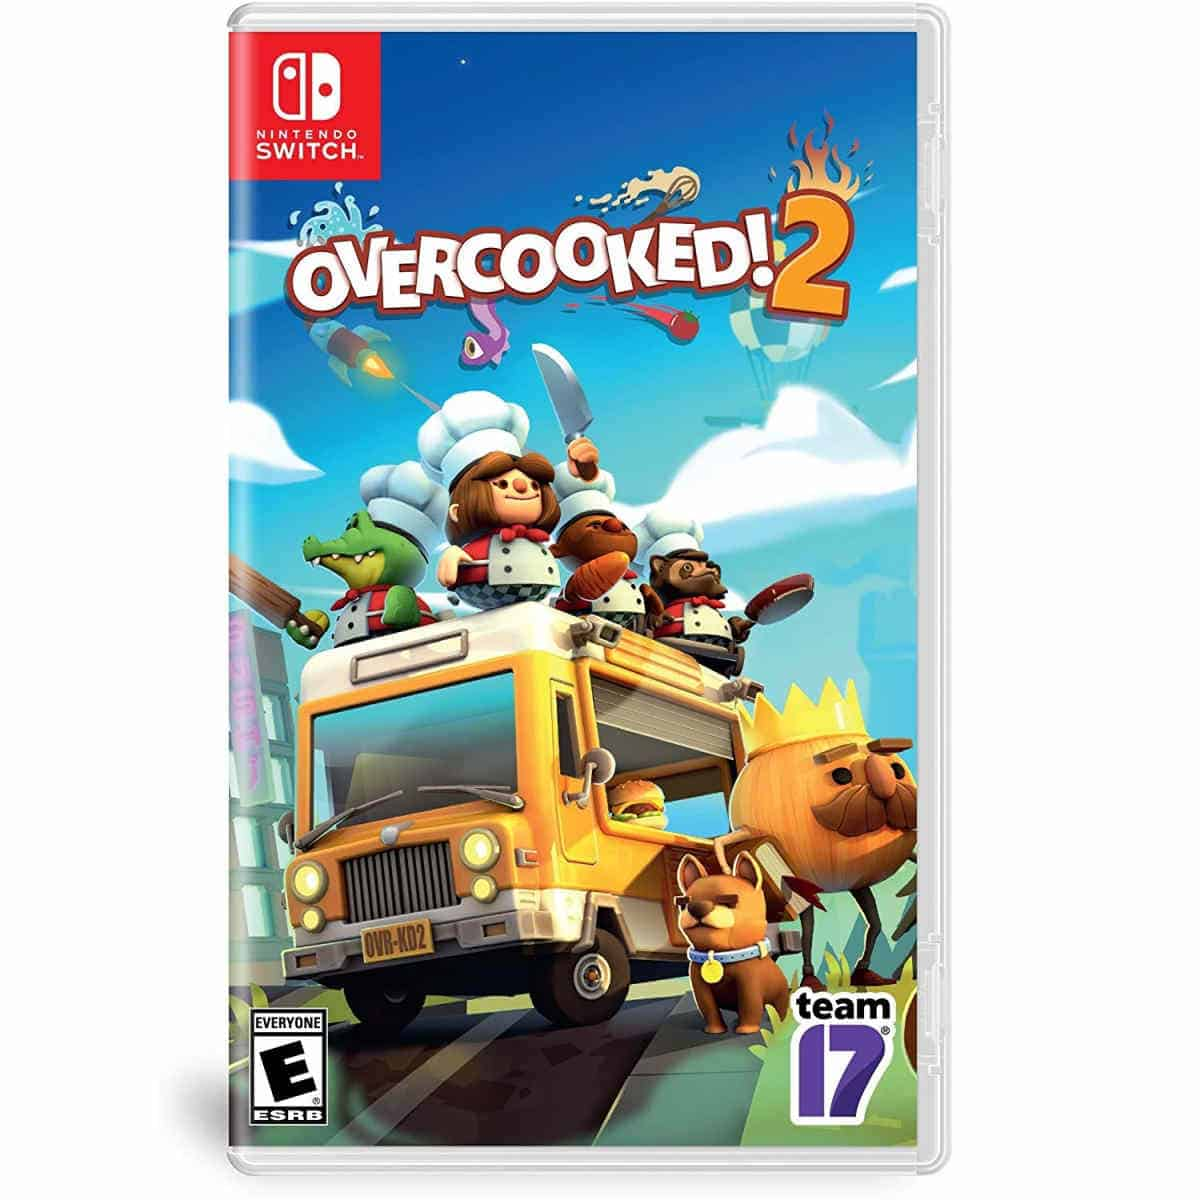 Overcooked 2 | Best Nintendo Switch Multiplayer Games